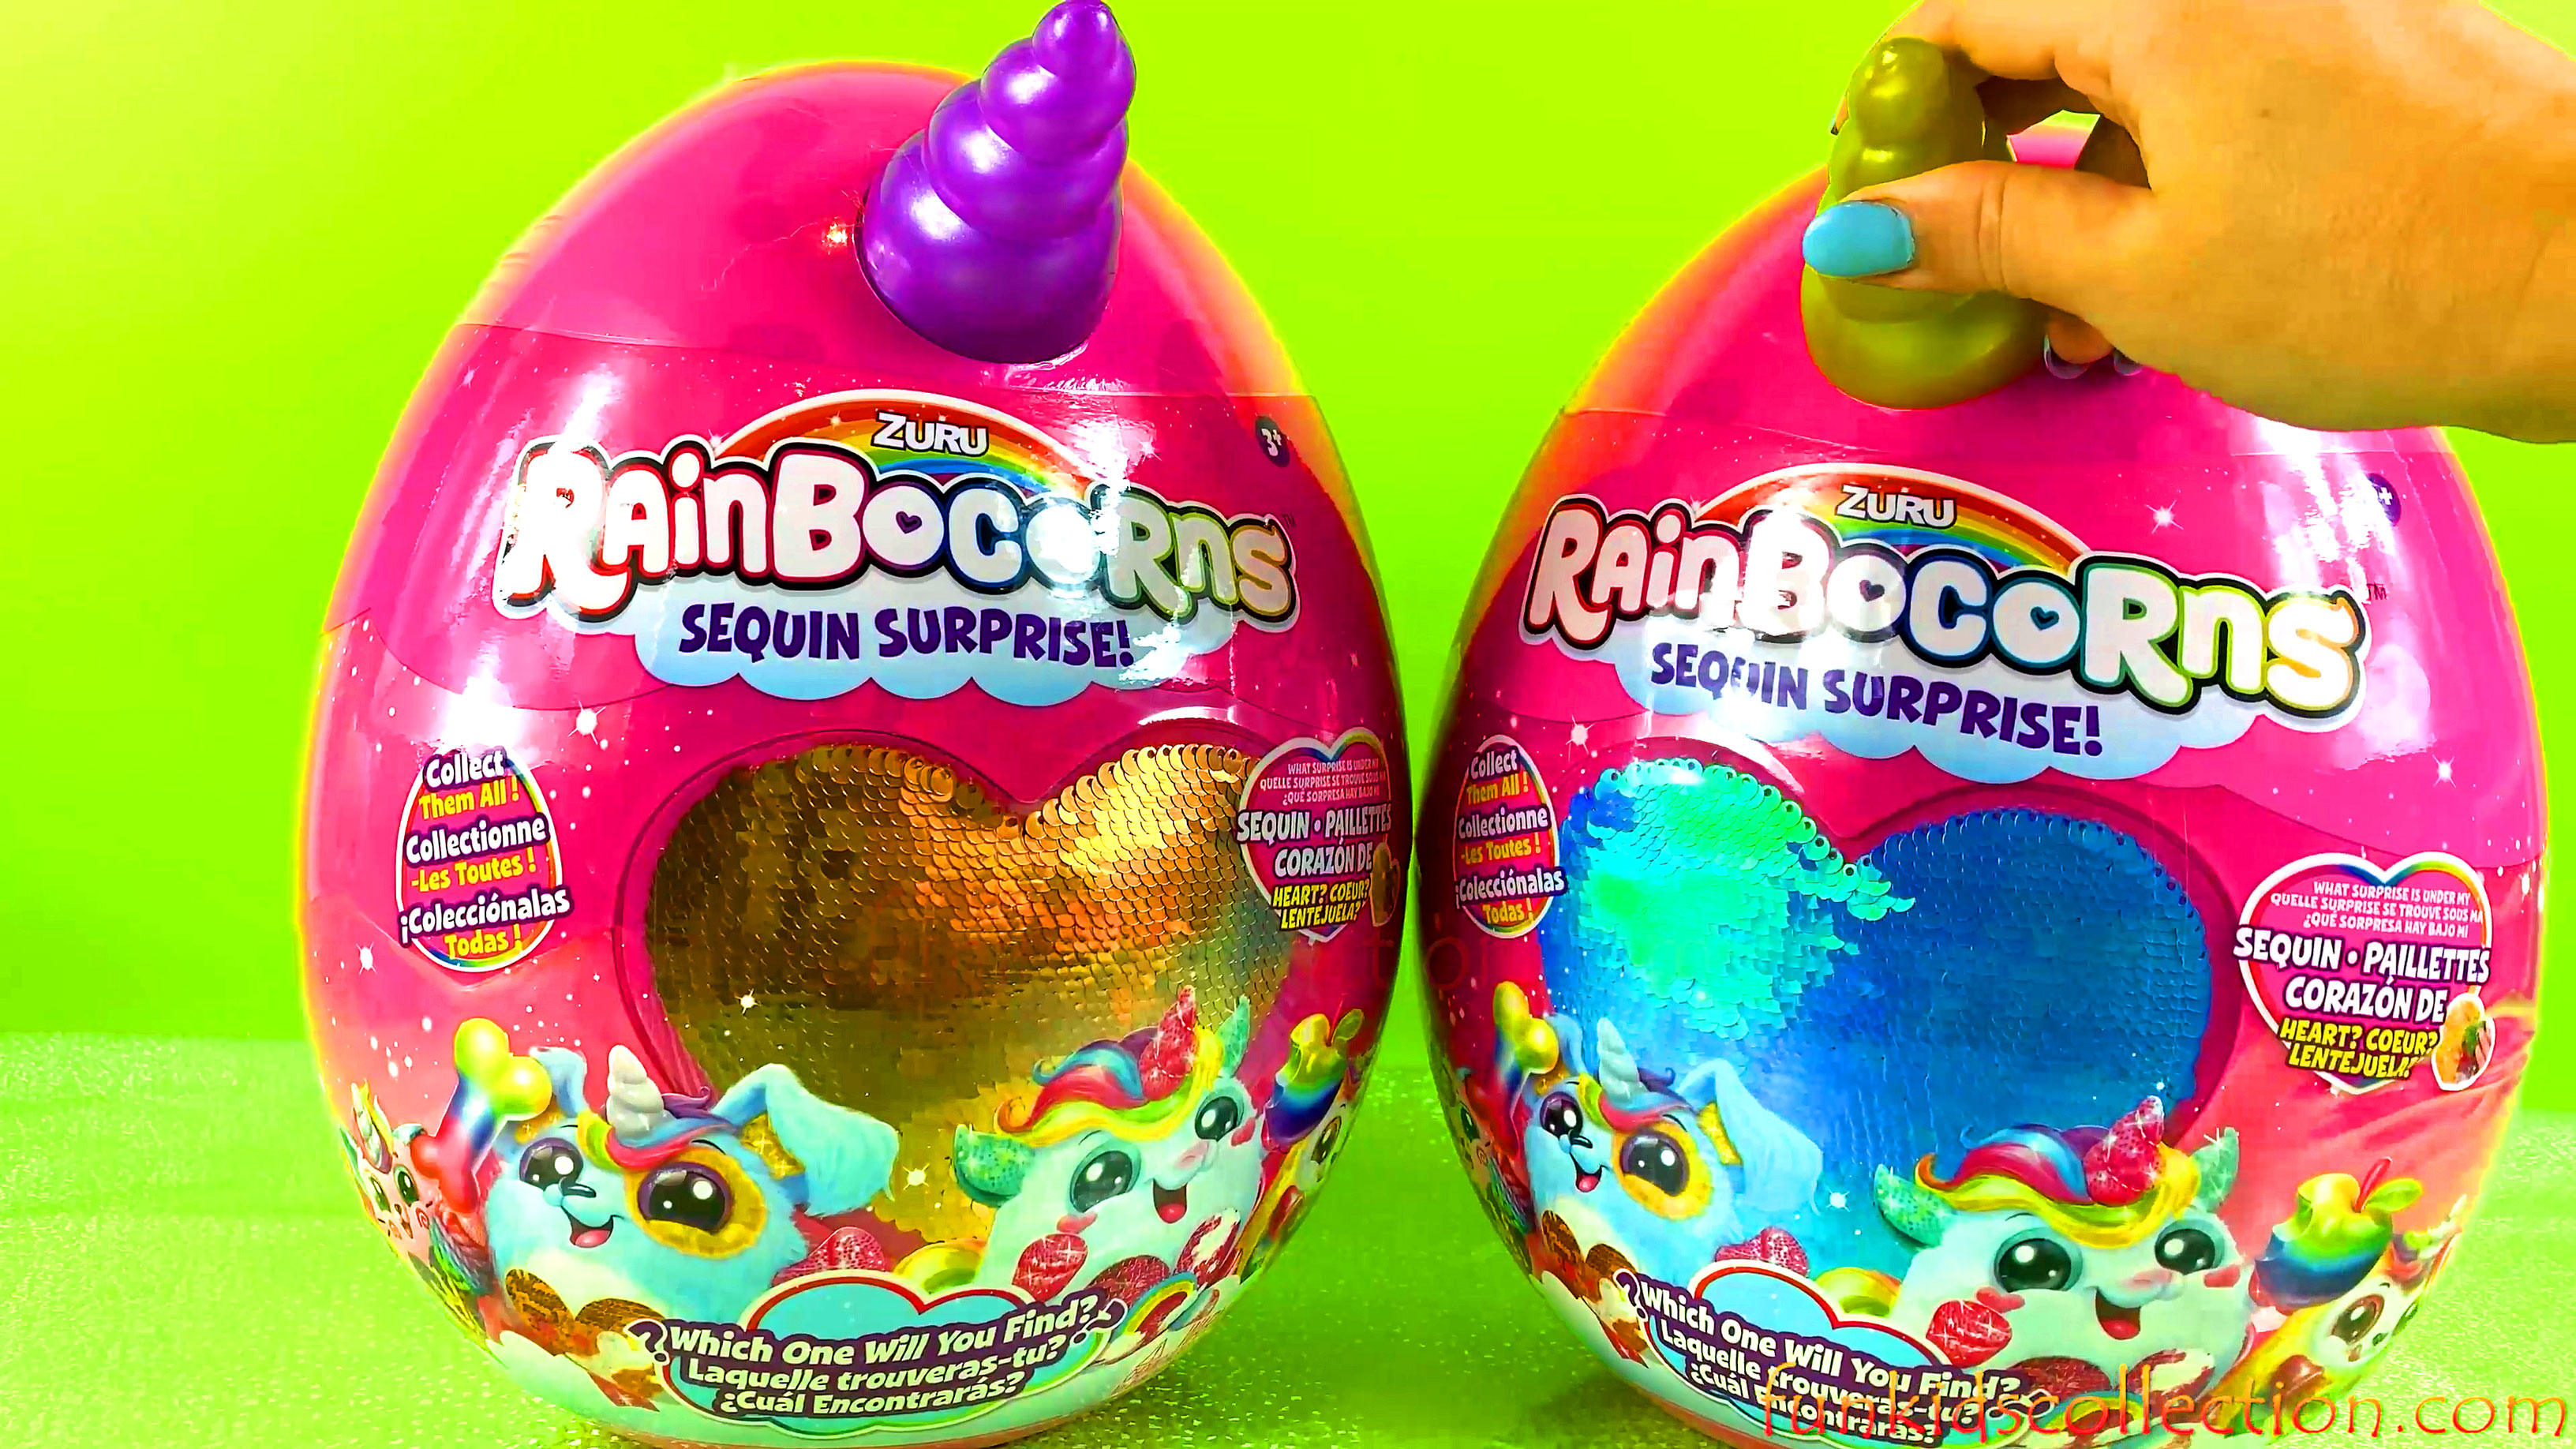 Unboxing Zuru Rainbocorns Sequin Surprise Rainbocorns Sequin Surprise Plush Surprise Eggs Toy